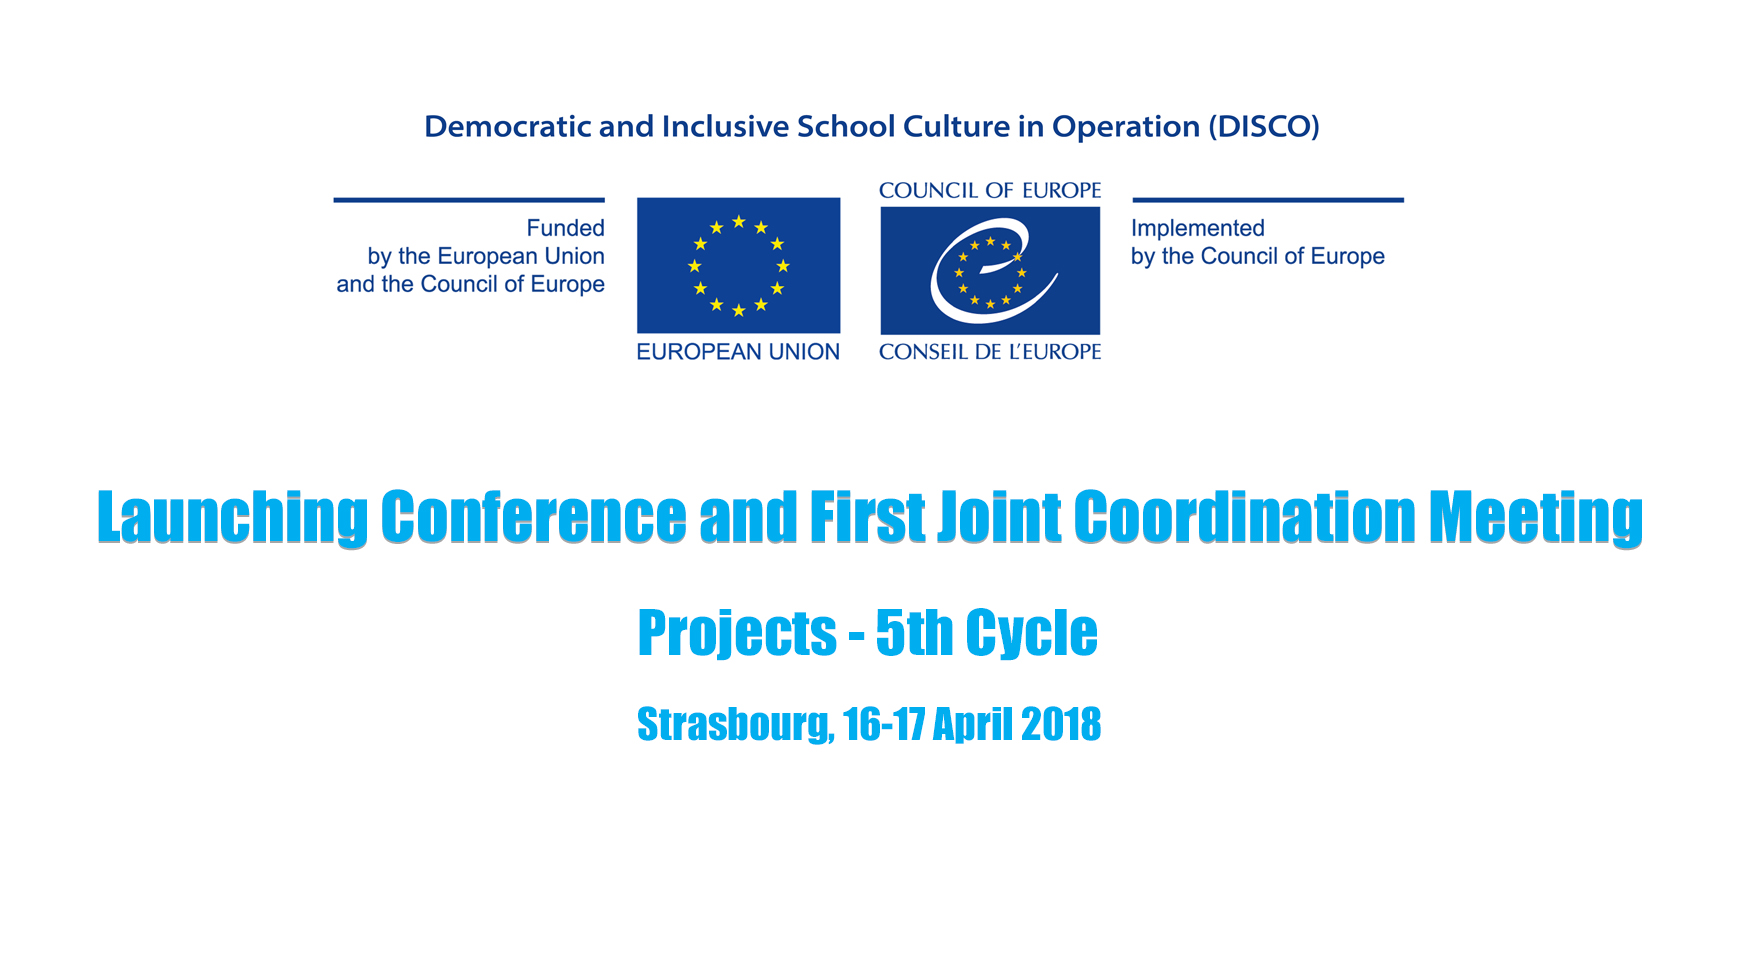 Joint Programme DISCO: Launching Conference and First Joint Coordination Meeting